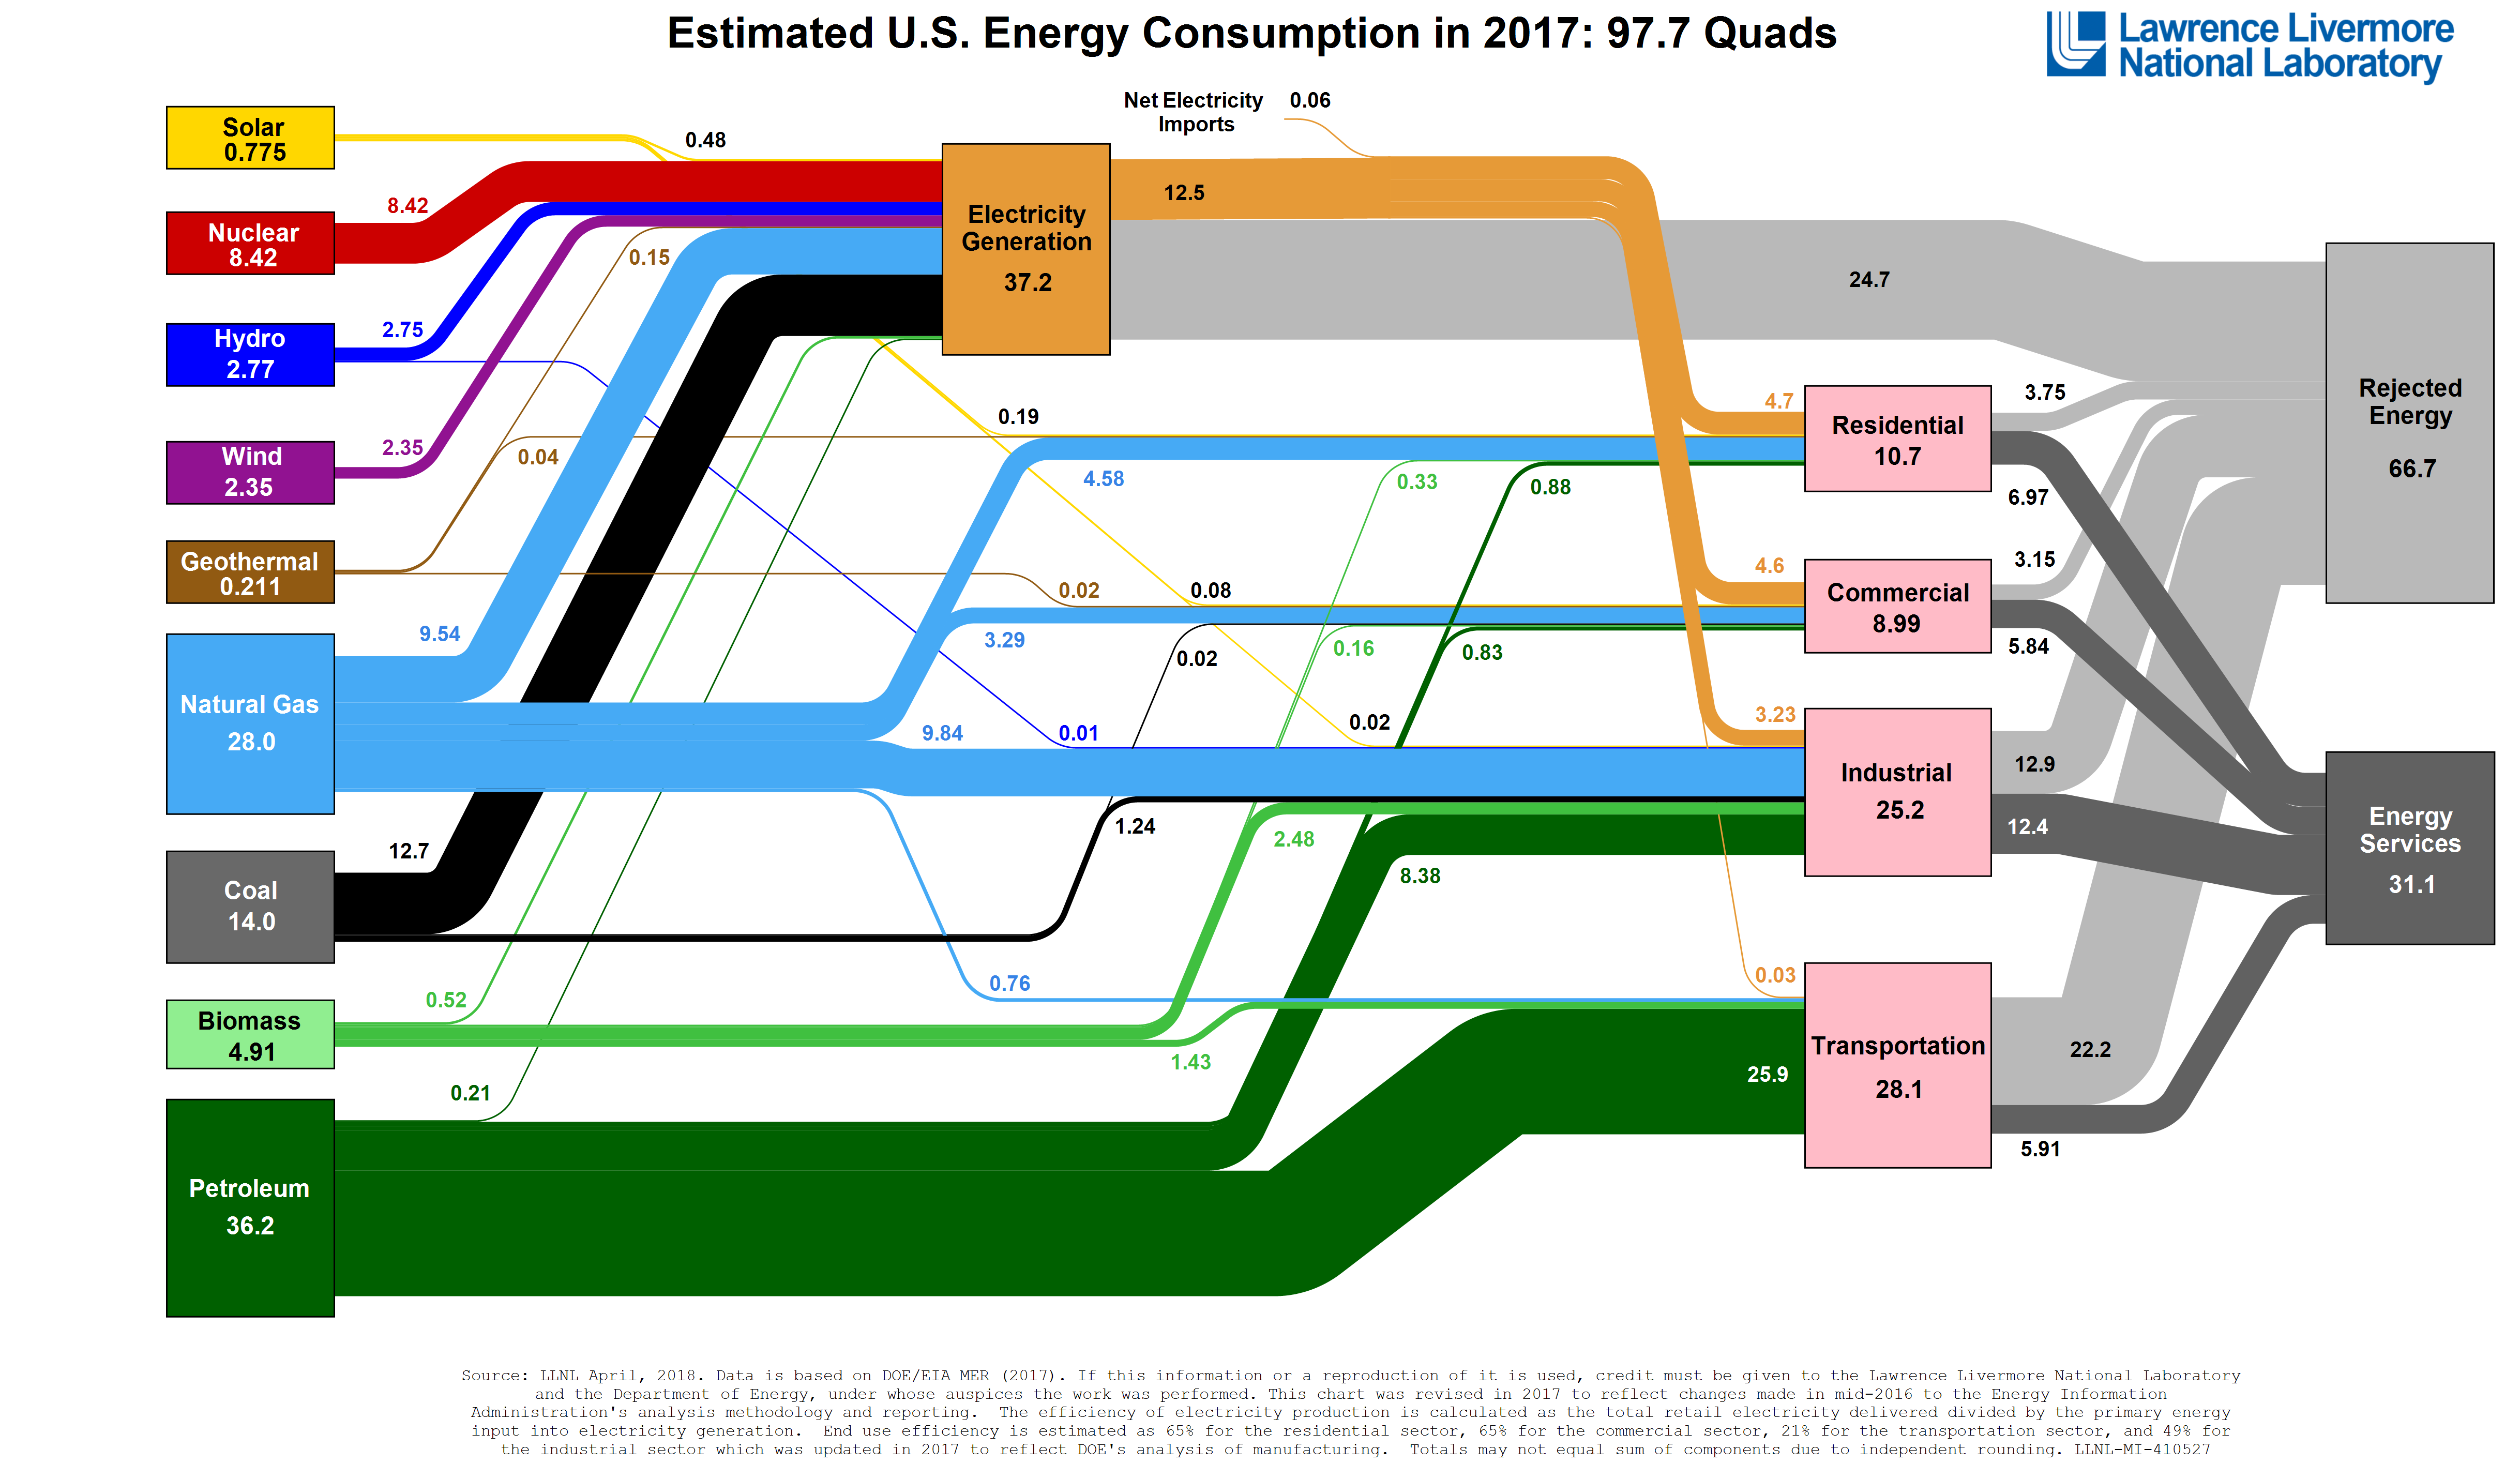 sankey diagram of estimated energy use in the US in 2017 as described in the text